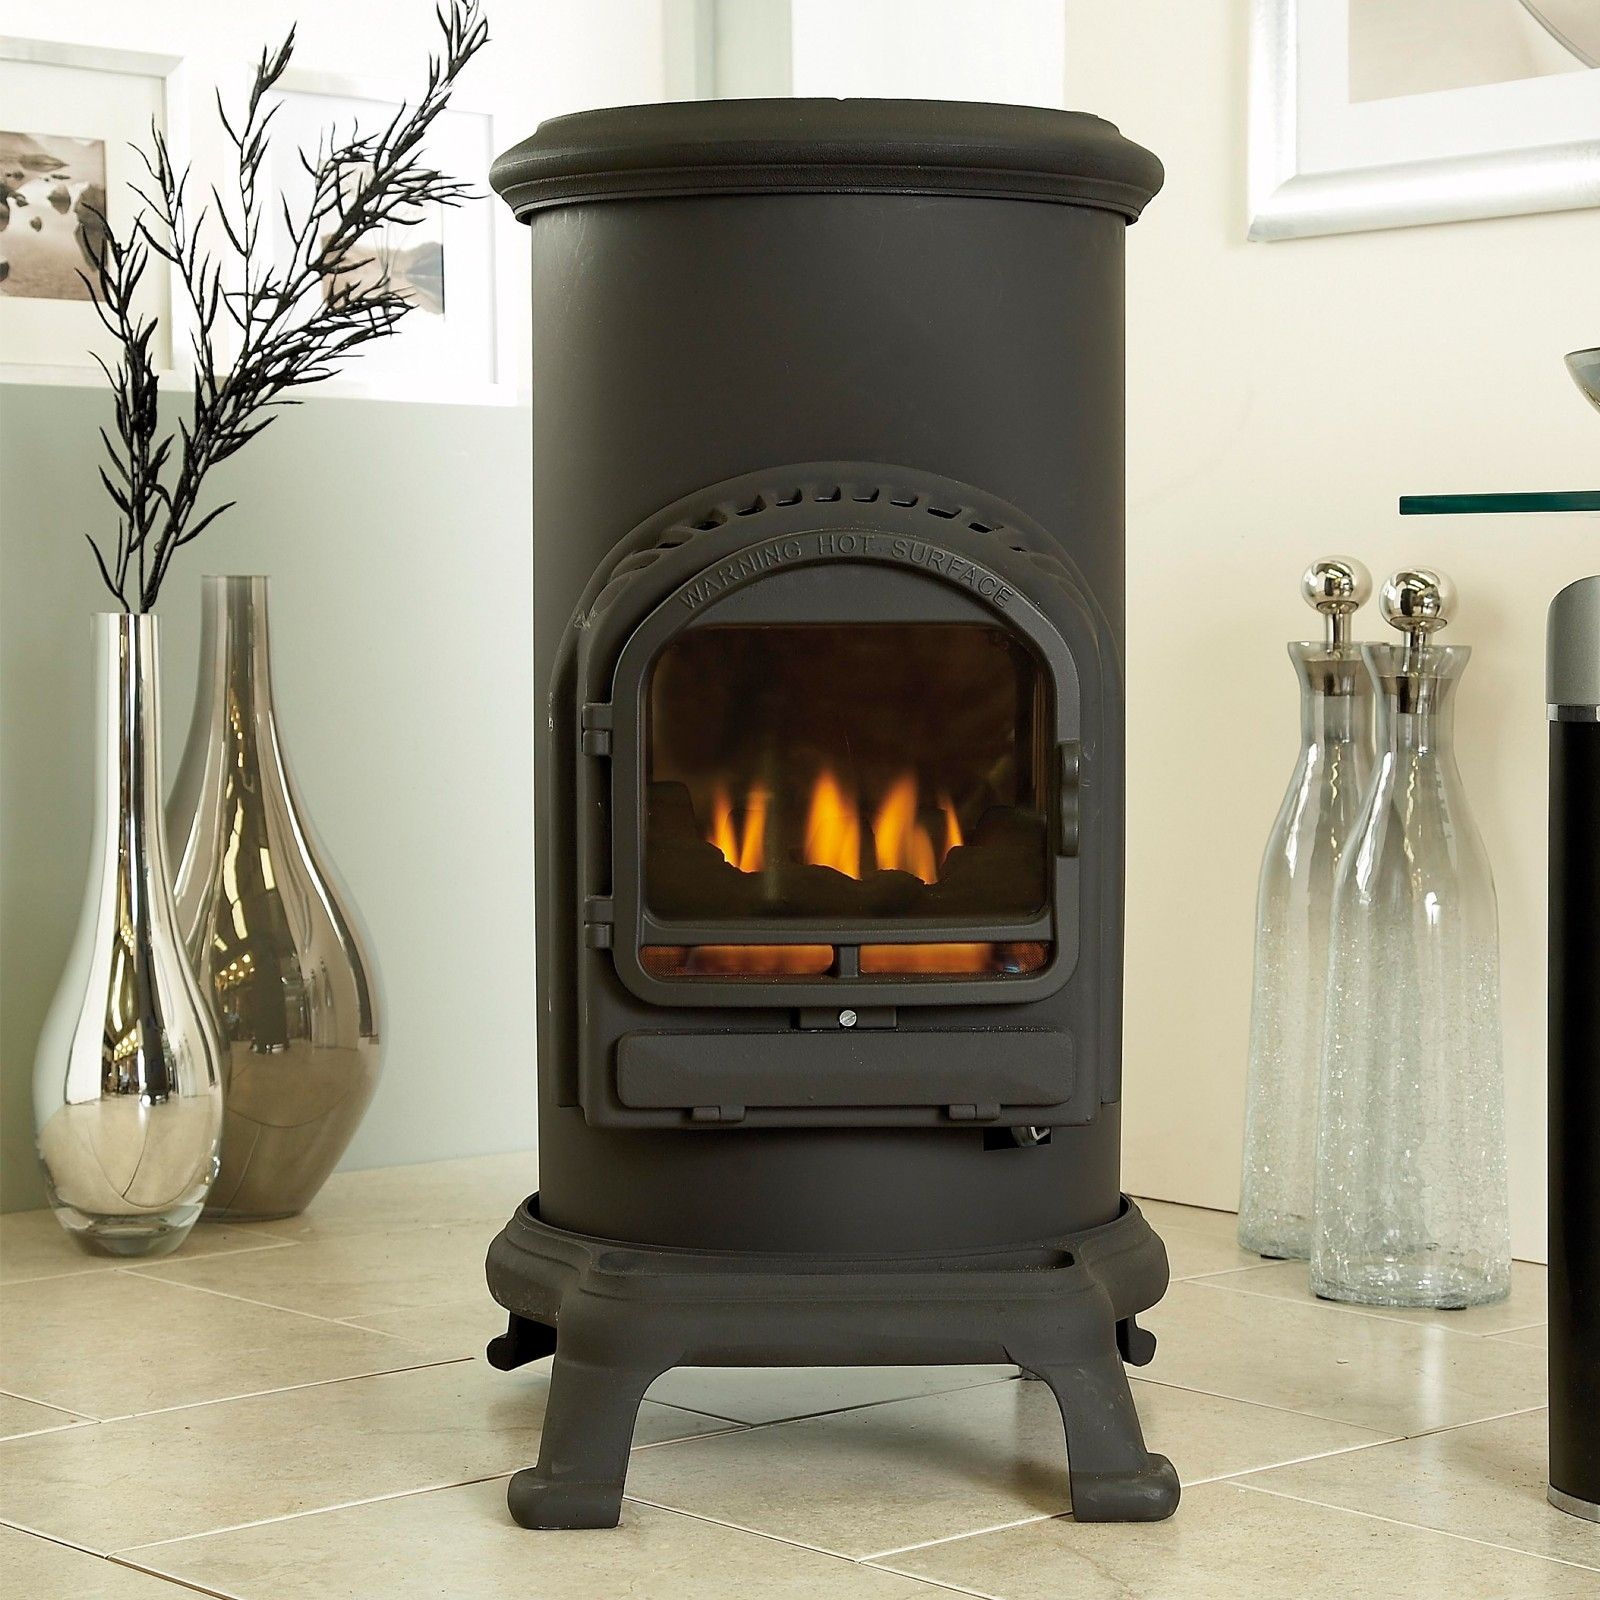 15 Electric Fireplace Pot Belly Stove Collections Fireplace Ideas Portable Fireplace Pot Belly Stove Fireplace Heater